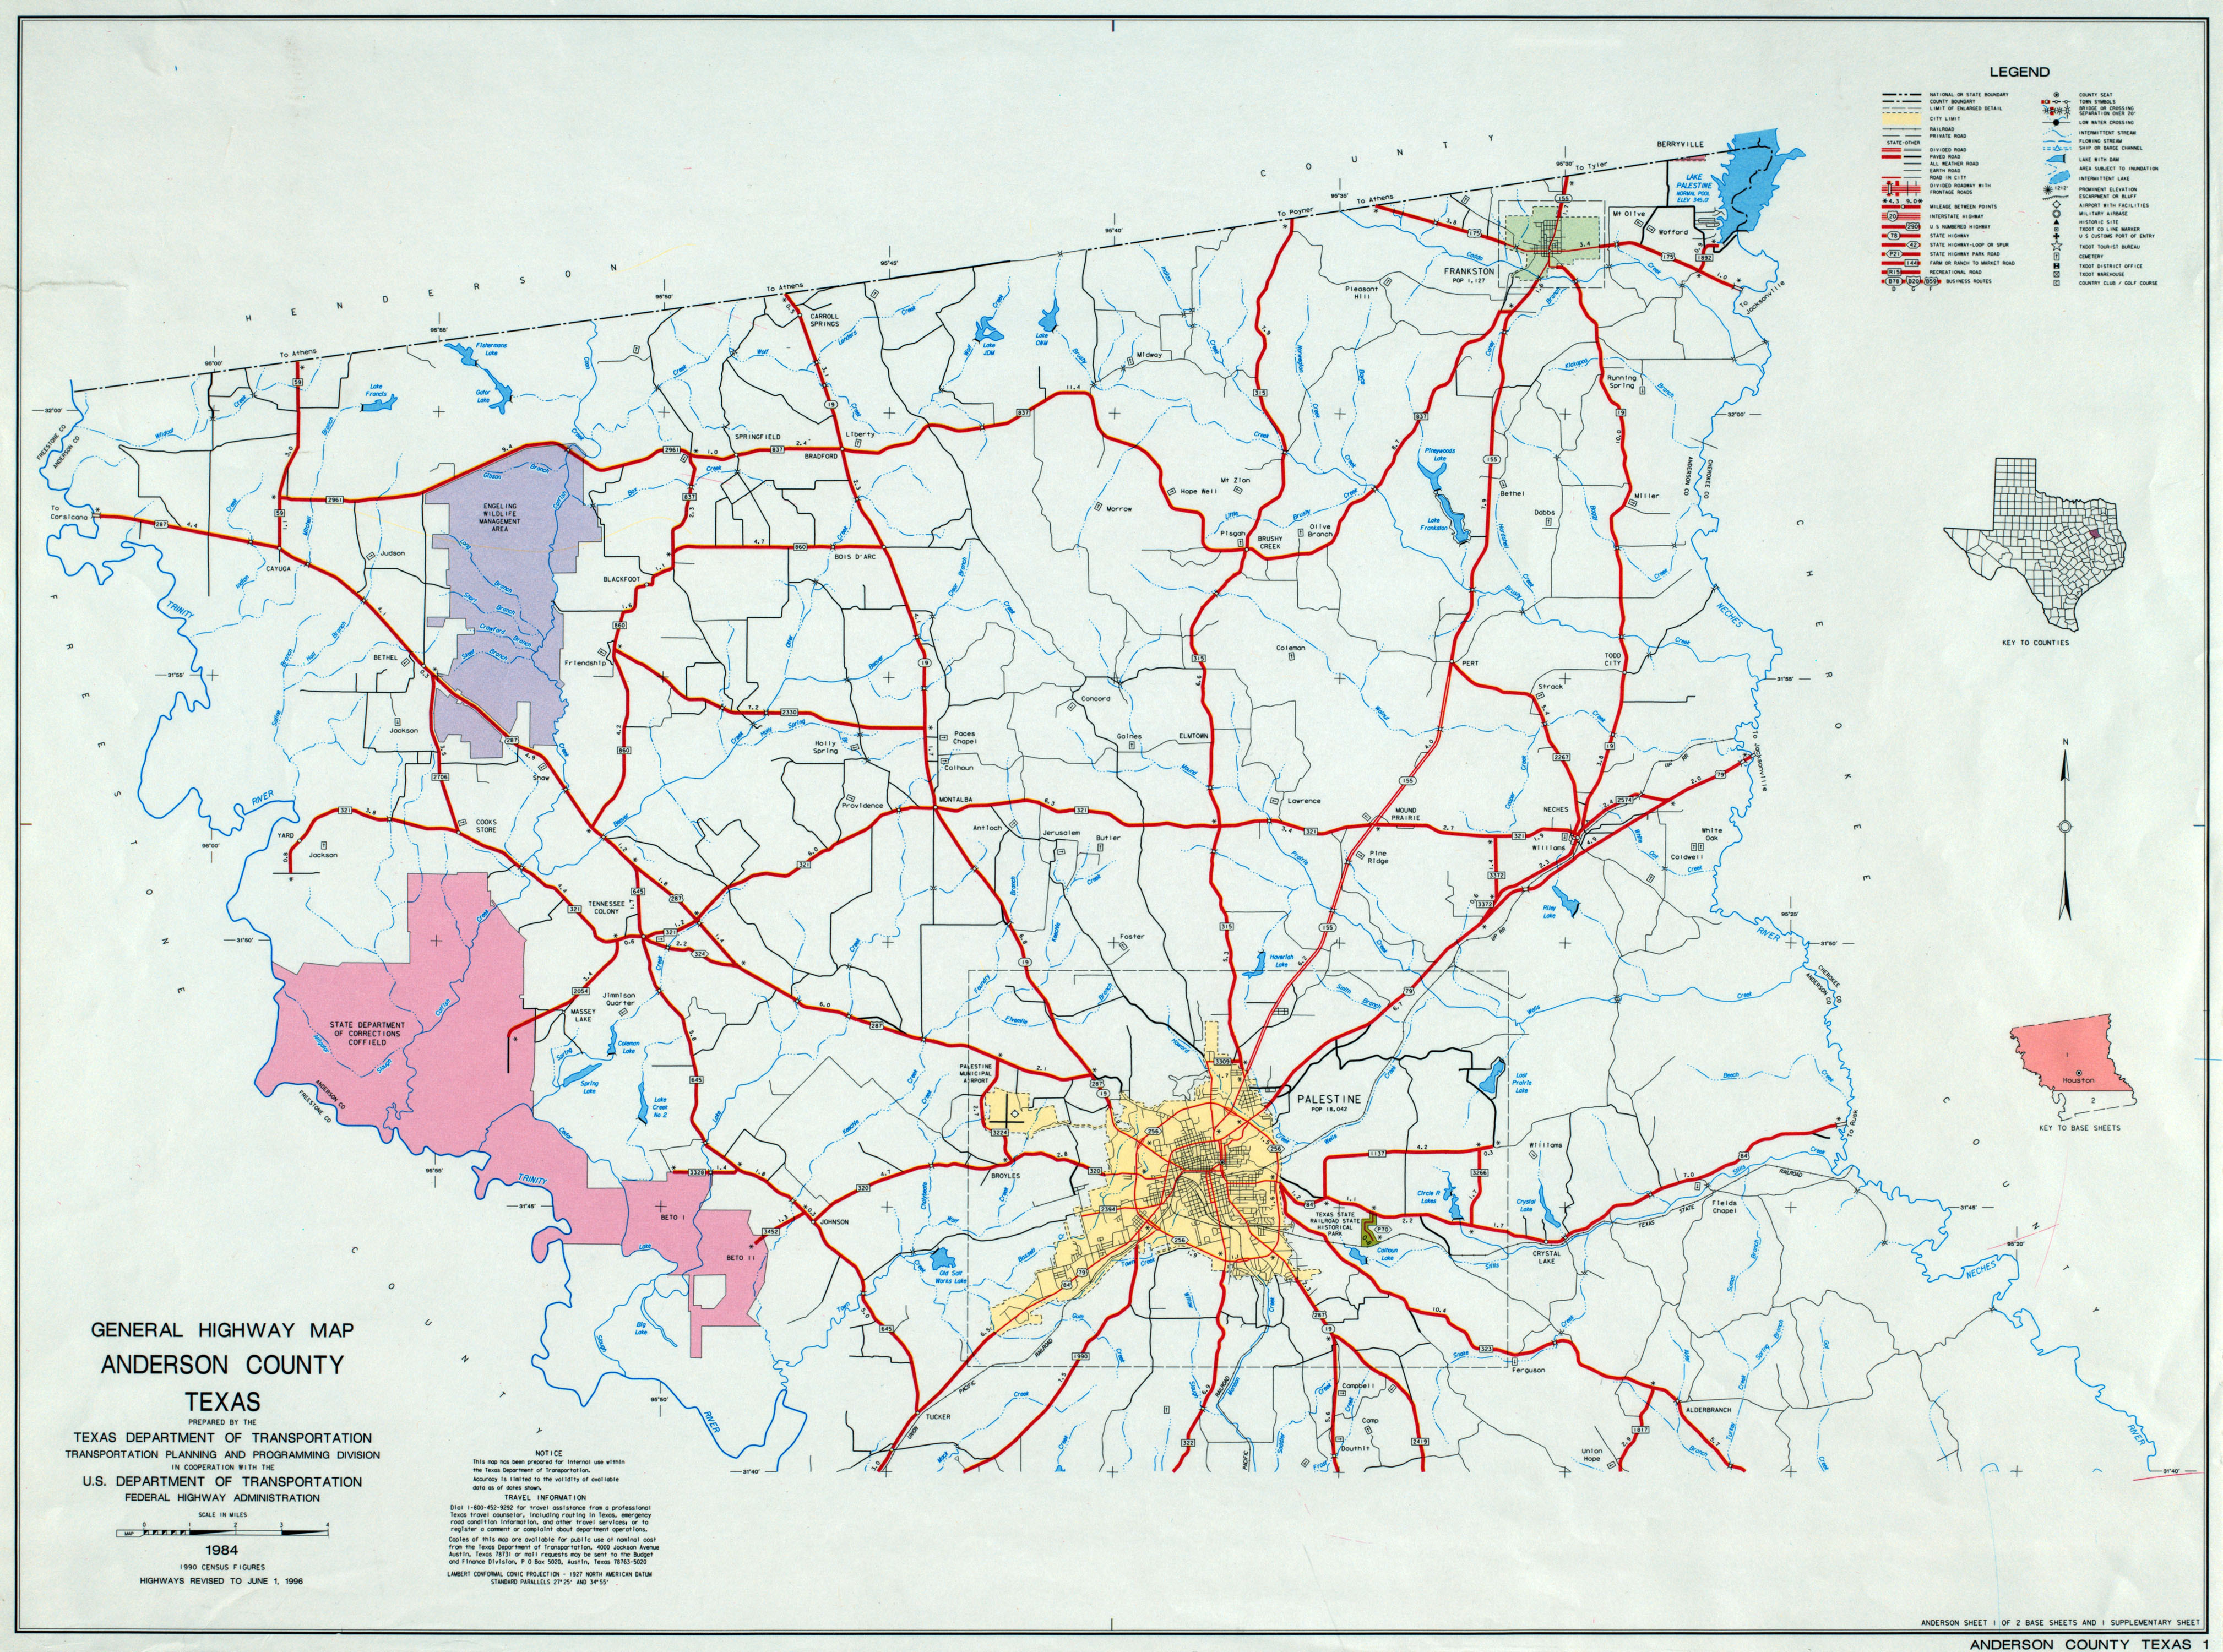 Texas County Highway Maps Browse - Perry-Castañeda Map Collection on rhome texas county map, tyler county, waller county texas map, wharton county texas map, webb county texas map, kenedy county texas map, waller county, chicago texas map, scurry county tx map, nacogdoches county texas map, madison county, jackson county, atascosa county, falls city, harris county, orange county texas map, williamson county, wilson county texas map, live oak county texas map, karnes detention center, montgomery county, dewitt county texas map, wilson county, zavala county, childress county texas abstract map, travis county, texas natural resources map, lee county, orange county, wharton county, milam county texas map, walker county texas map, guadalupe county, lavaca county texas map, newton county, sherman county texas map, karnes city,